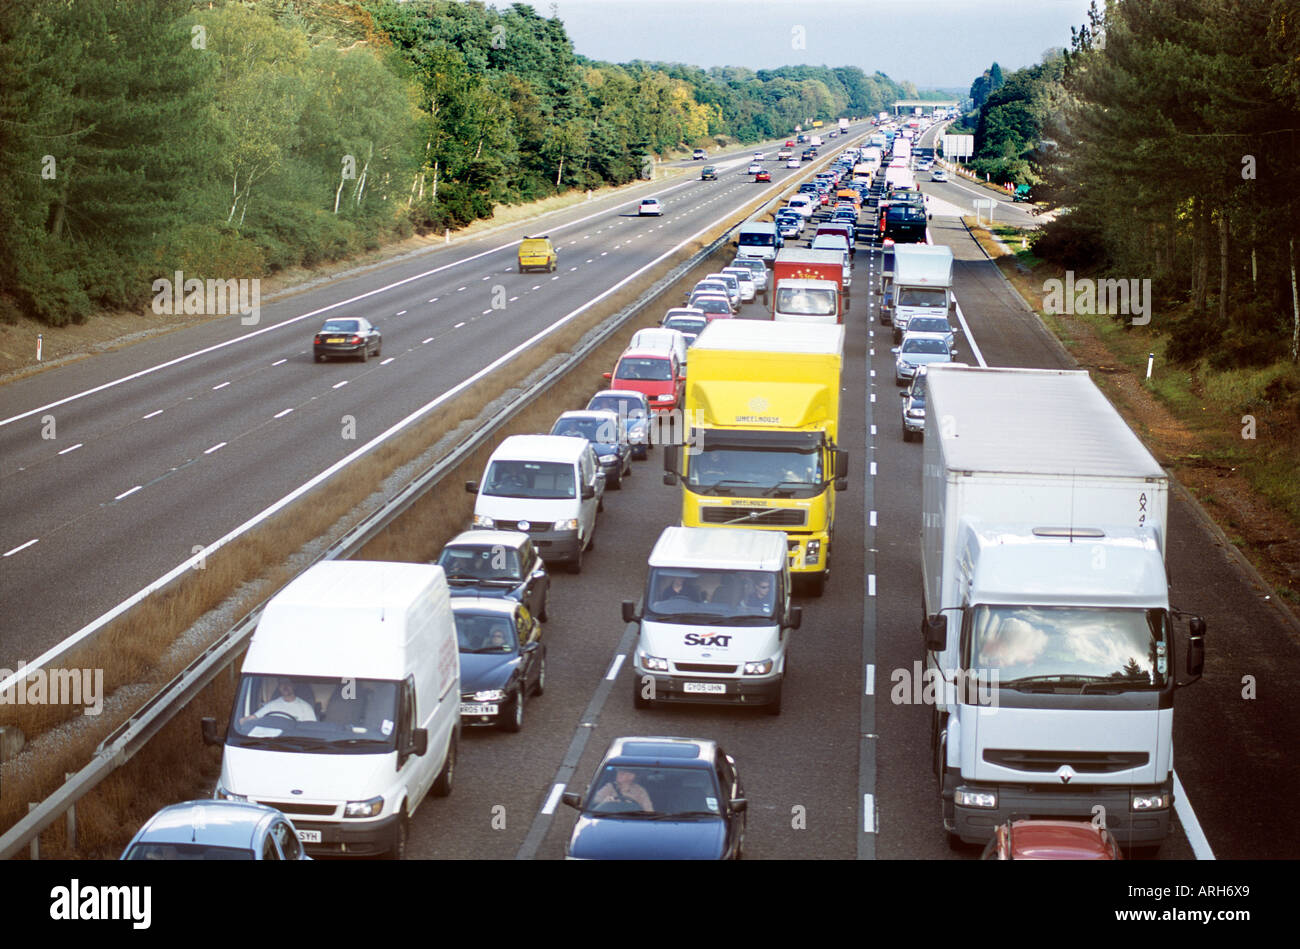 M3 Motorway blocked by accident causing severe Traffic Jam - Stock Image